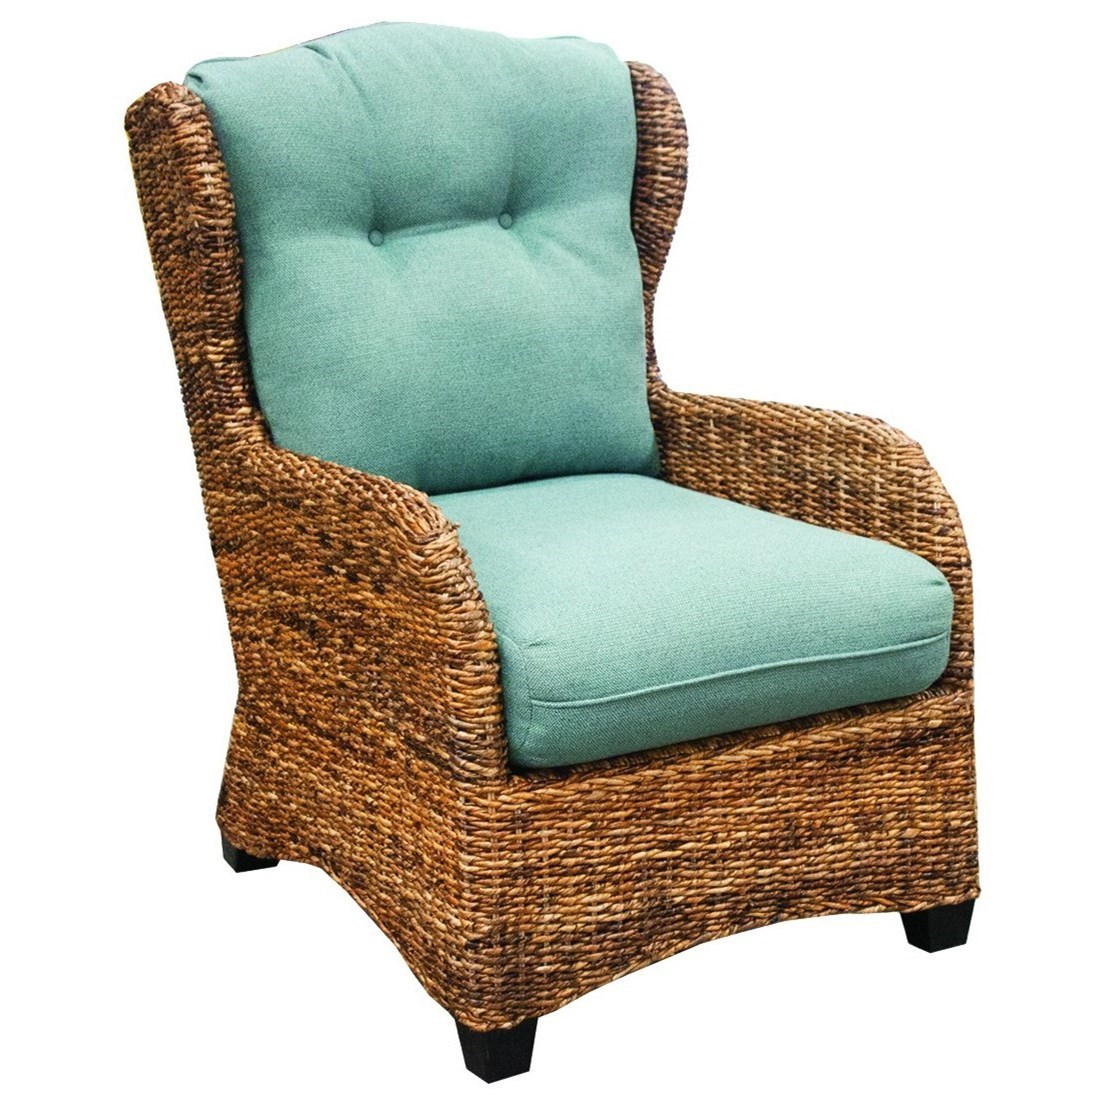 Capris Furniture Chairs And Ottomans Wicker Occasional Chair With Tufted  Back Cushion